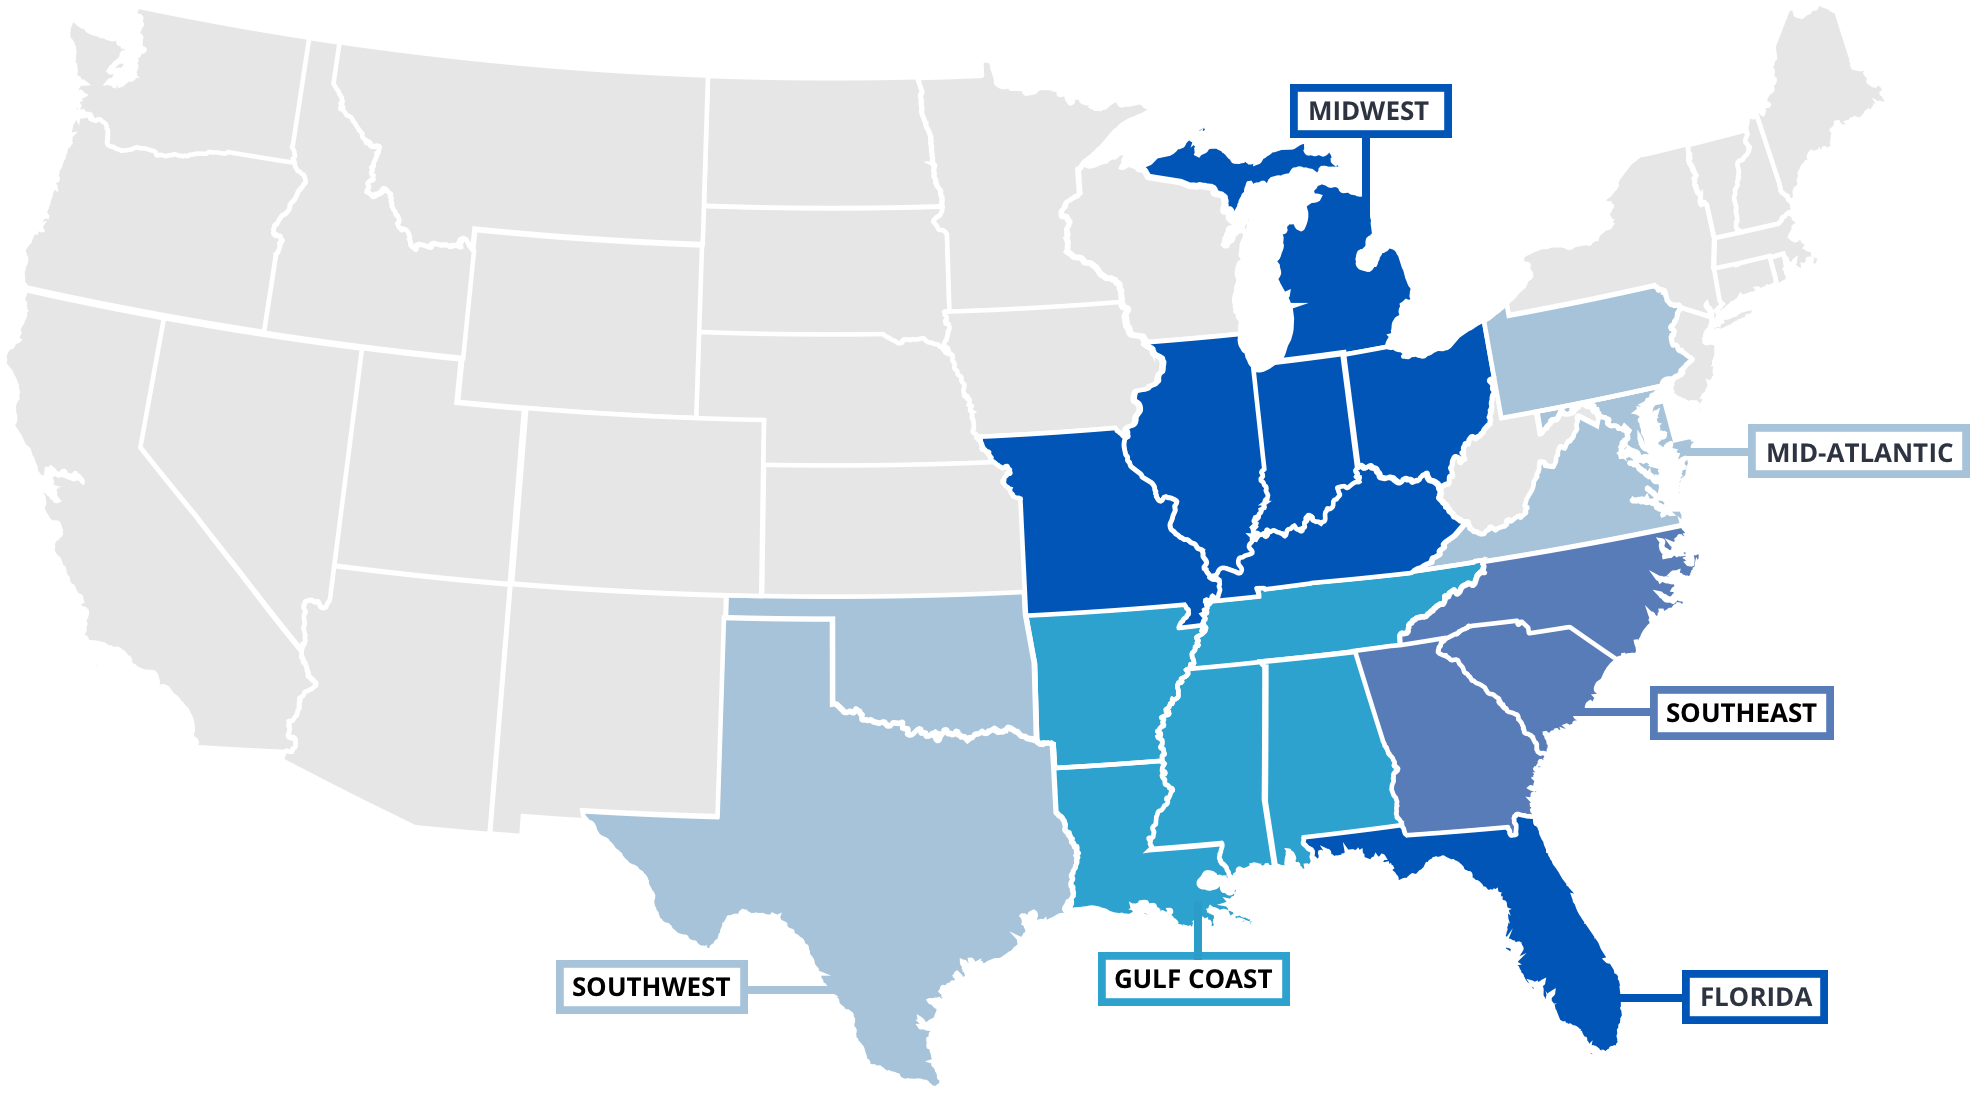 map showing states FCCI covers